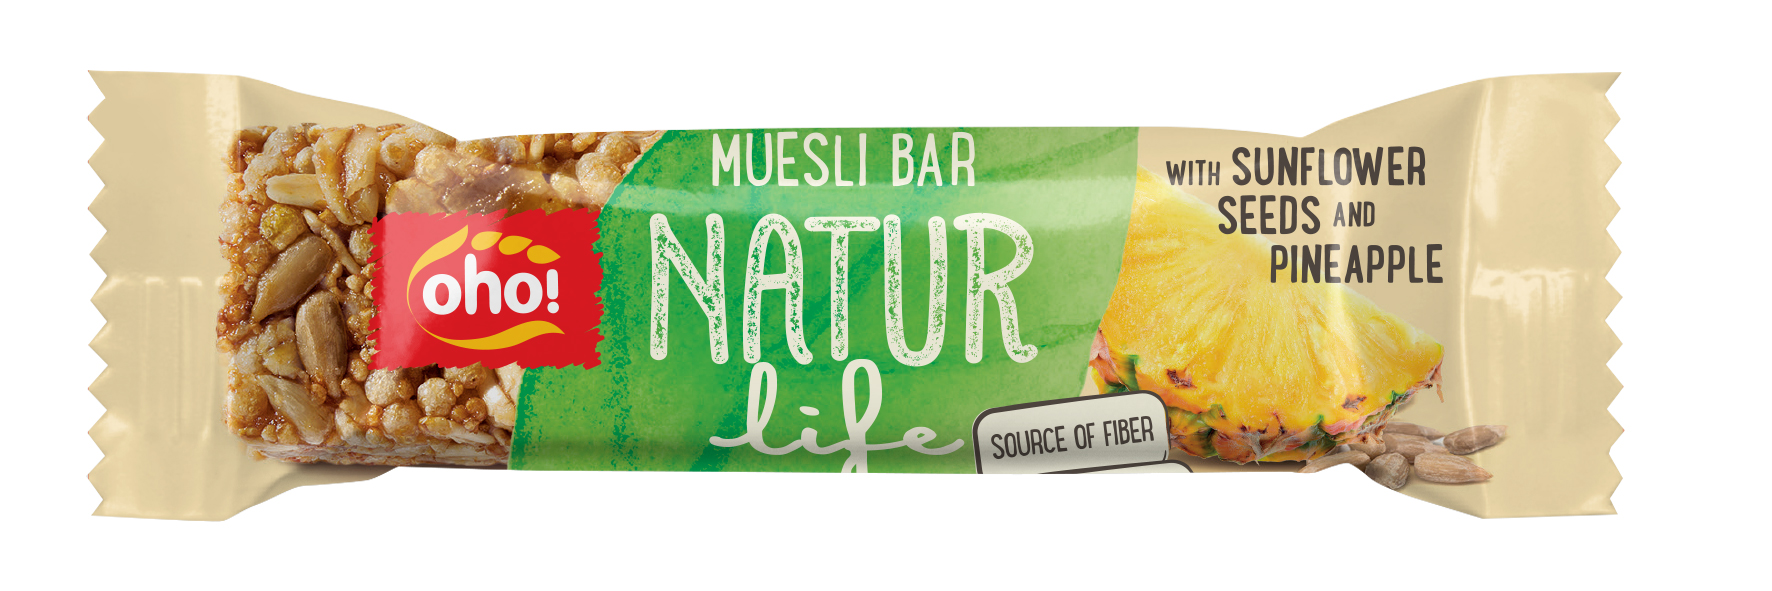 Muesli bar Natur life with sunflower seeds and pineaples